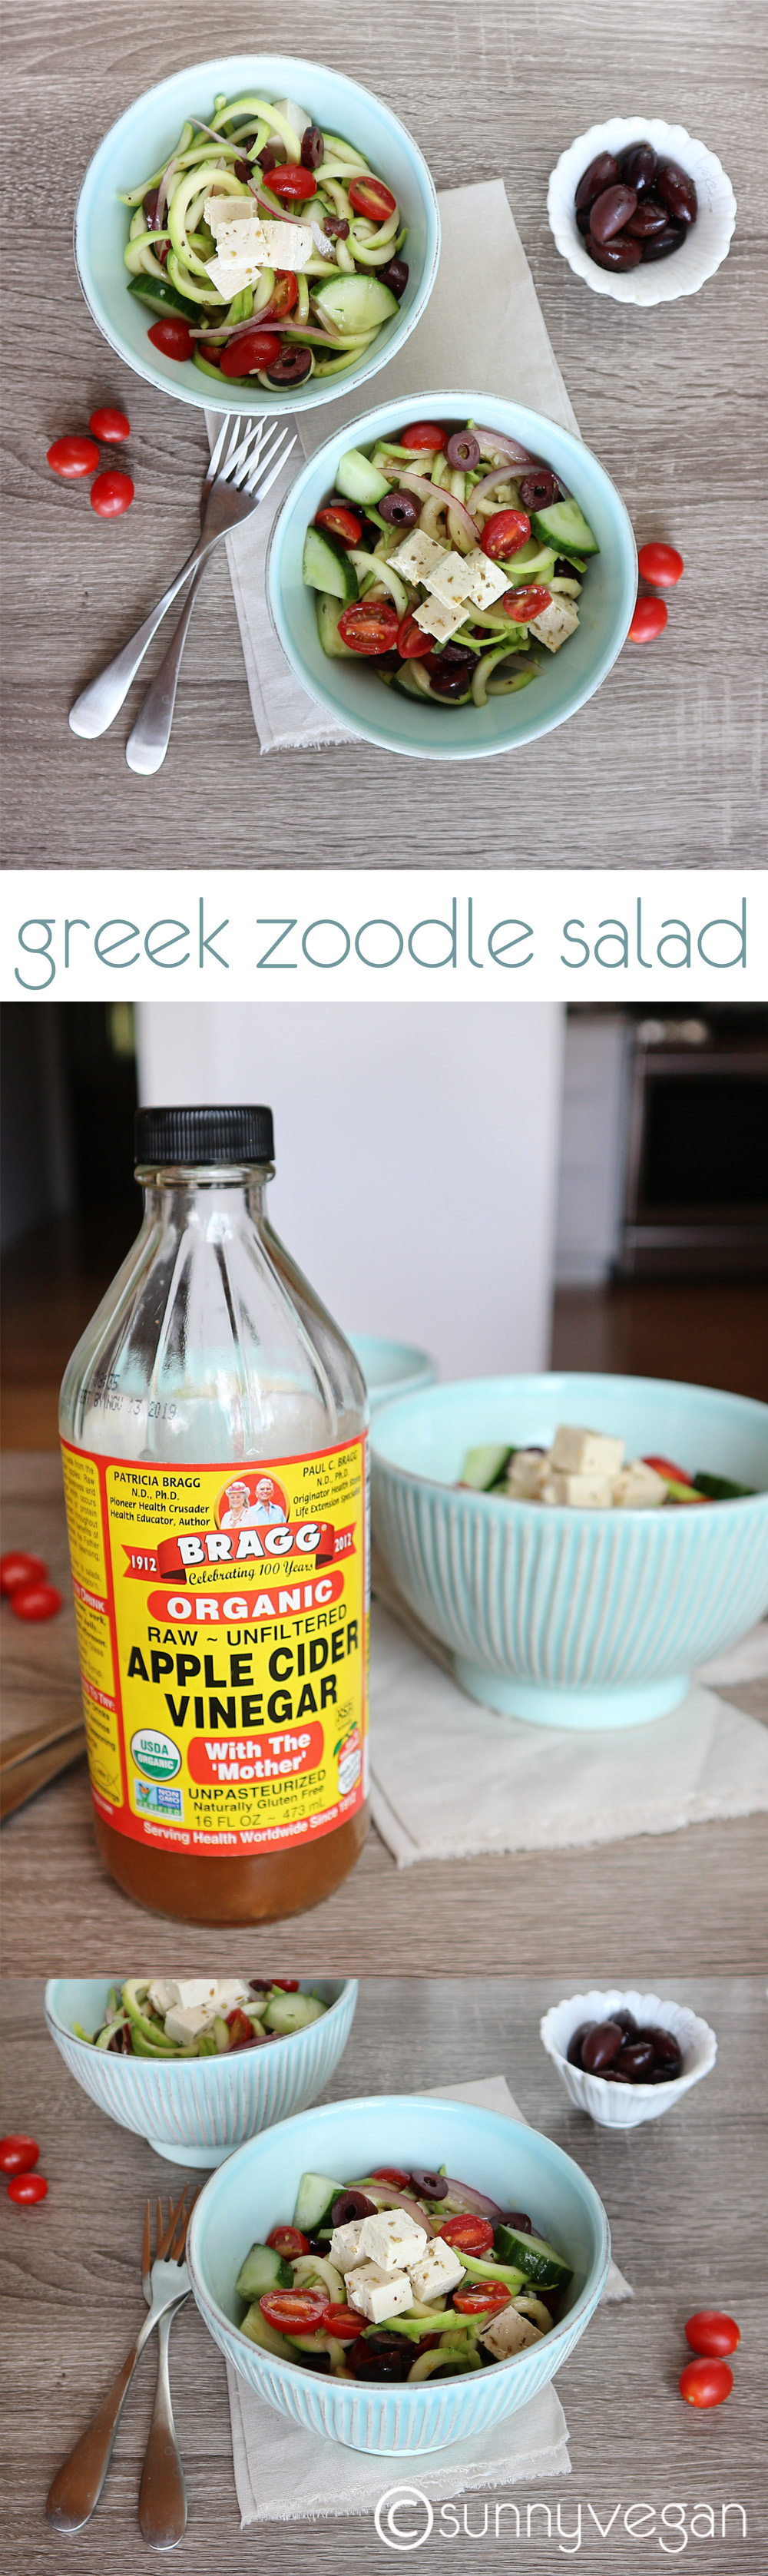 greek zoodle salad from sunny vegan